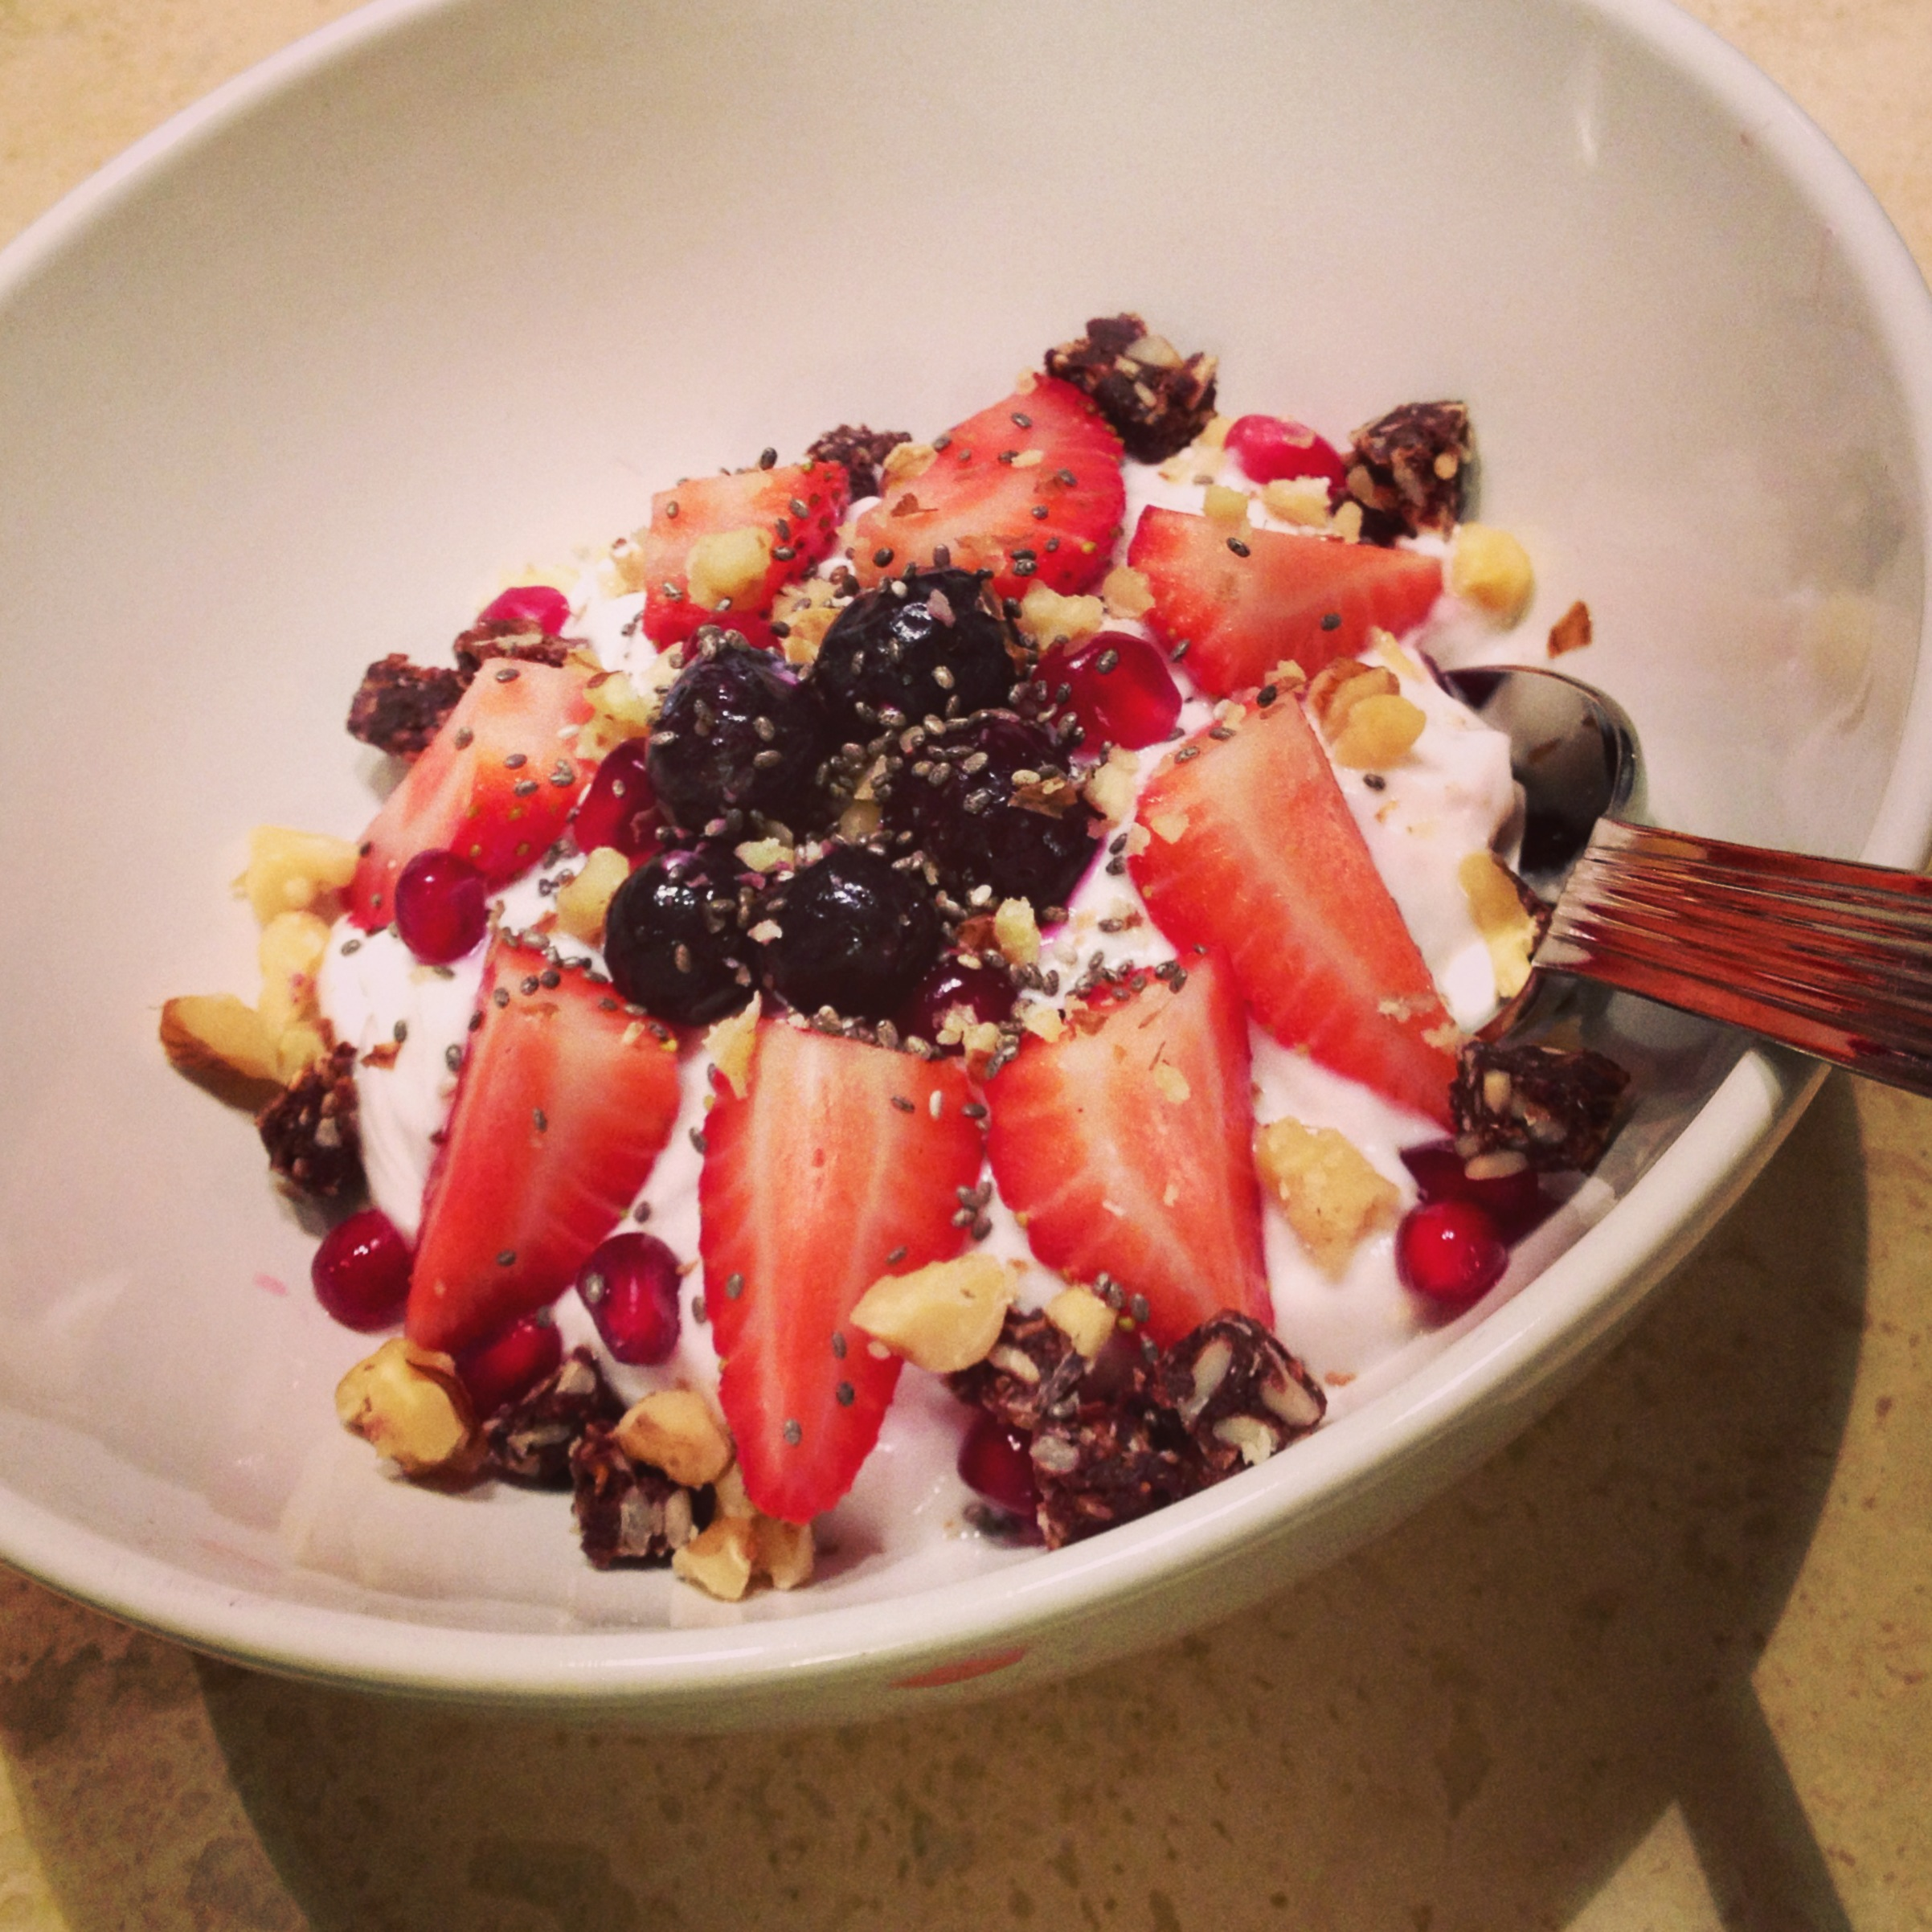 1 cup non-fat greek yogurt, fresh strawberries, blueberries, pomegranate seeds, chopped walnuts, chia seeds.